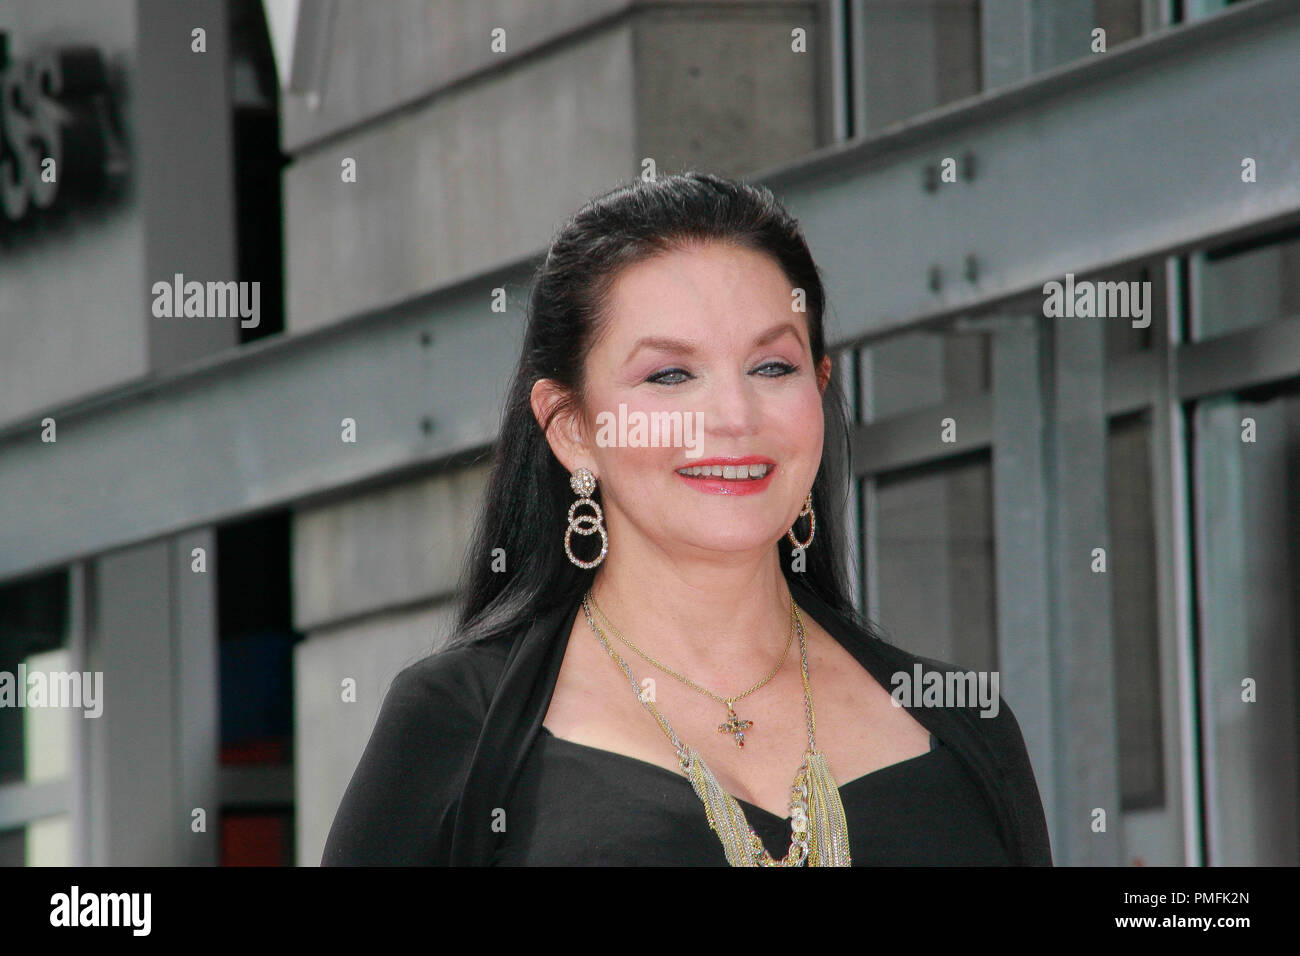 Crystal Gayle at the Hollywood Chamber of Commerce ceremony to honor her with the 2,390th Star on the Hollywood Walk of Fame on Vine Street near Sunset Boulevard in Hollywood, CA, October 2, 2009. Photo by Picturelux File Reference # 30082_11PLX   For Editorial Use Only -  All Rights Reserved - Stock Image